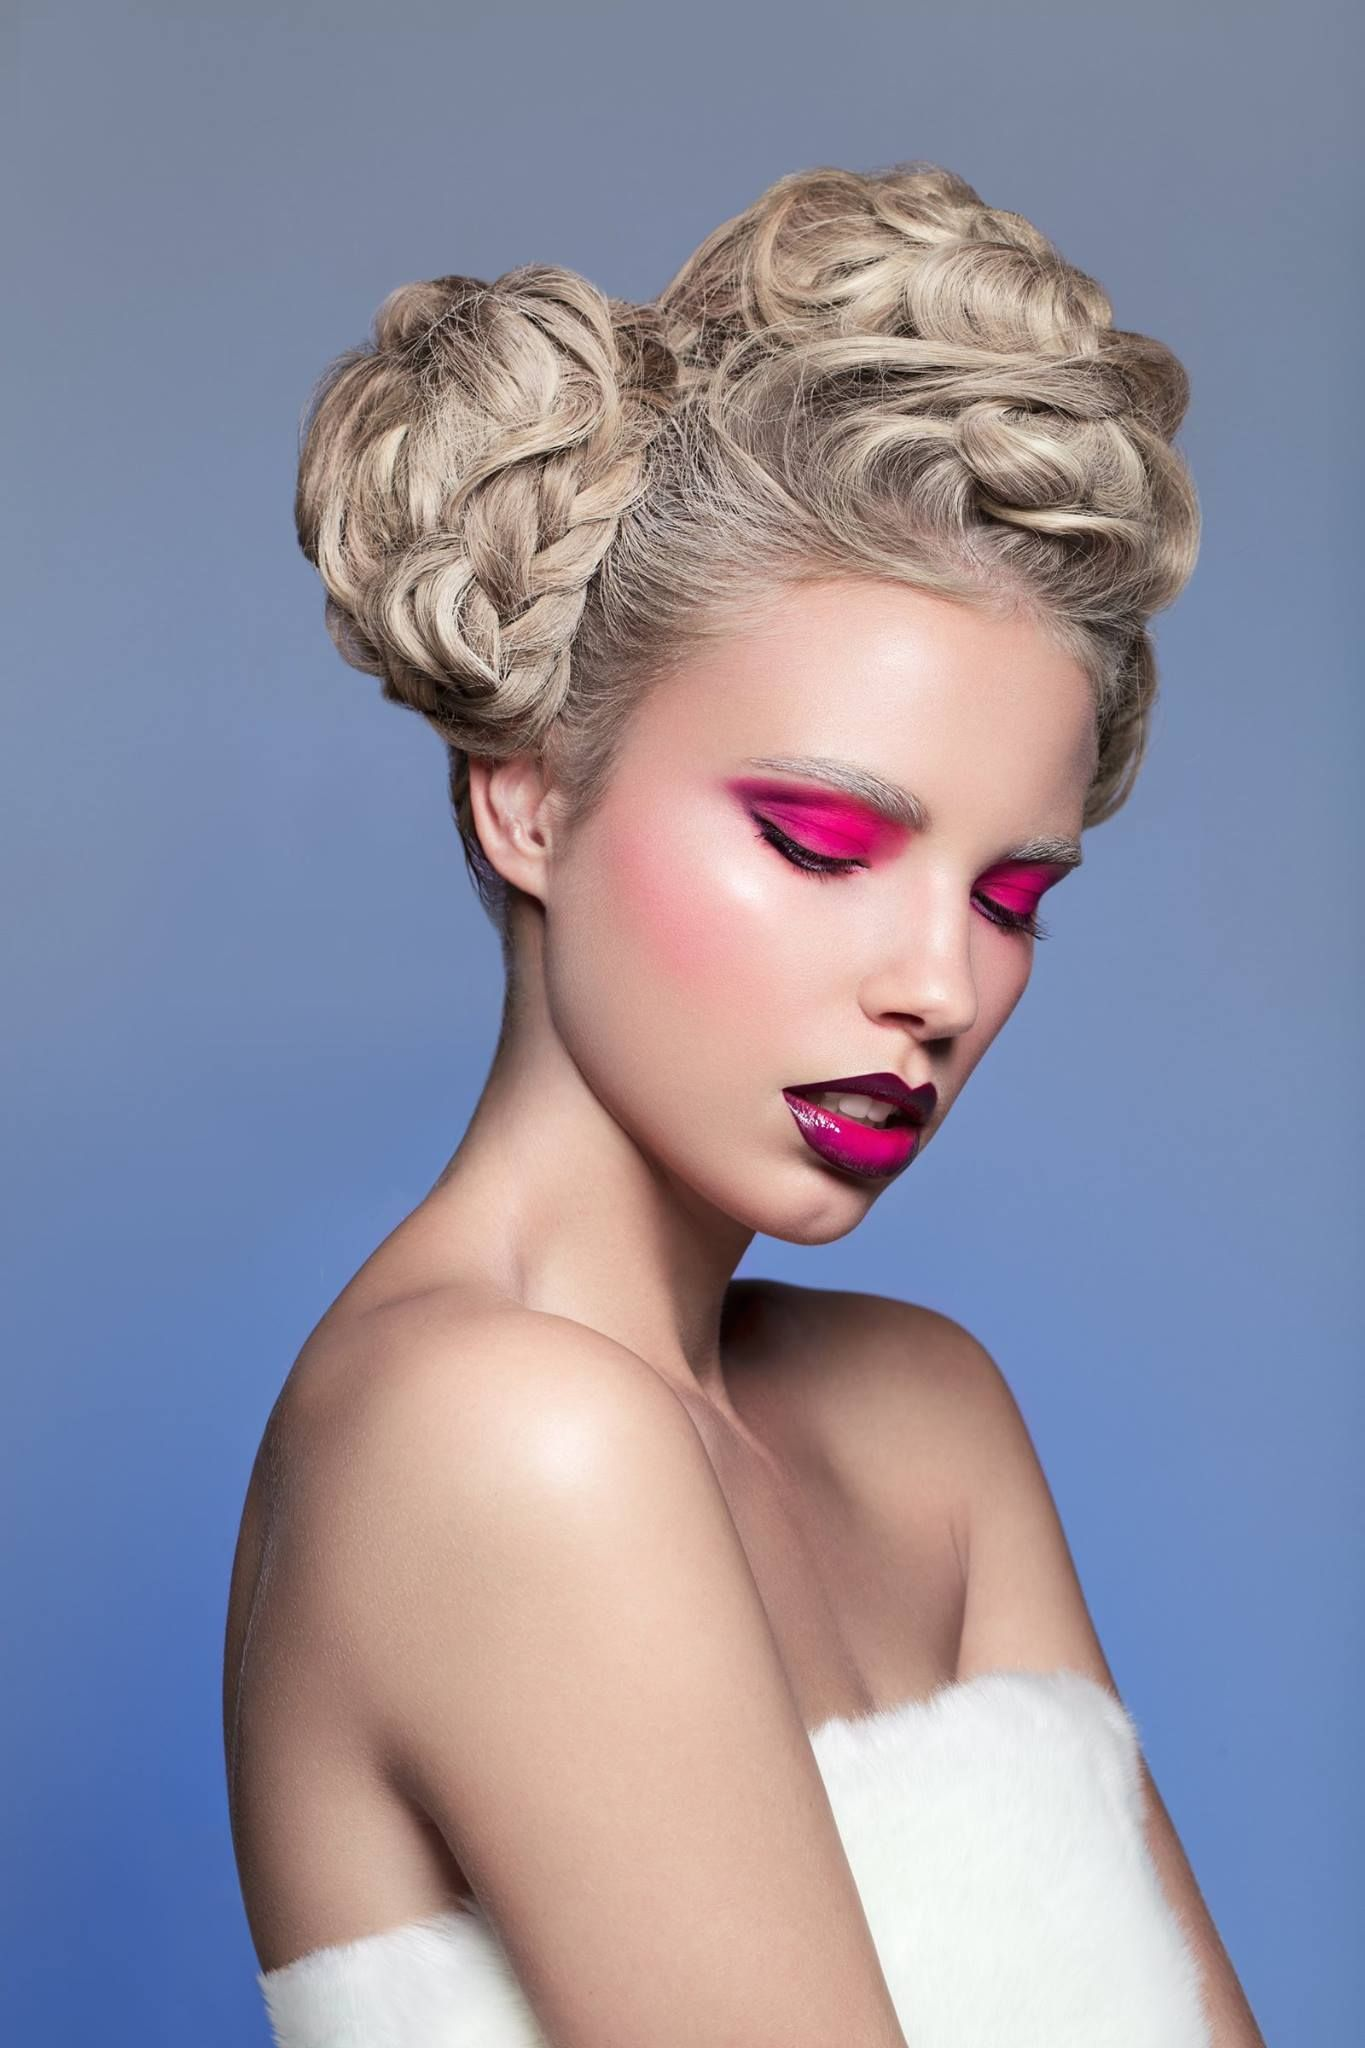 to our world of Beauty ! ApresVous is a team of